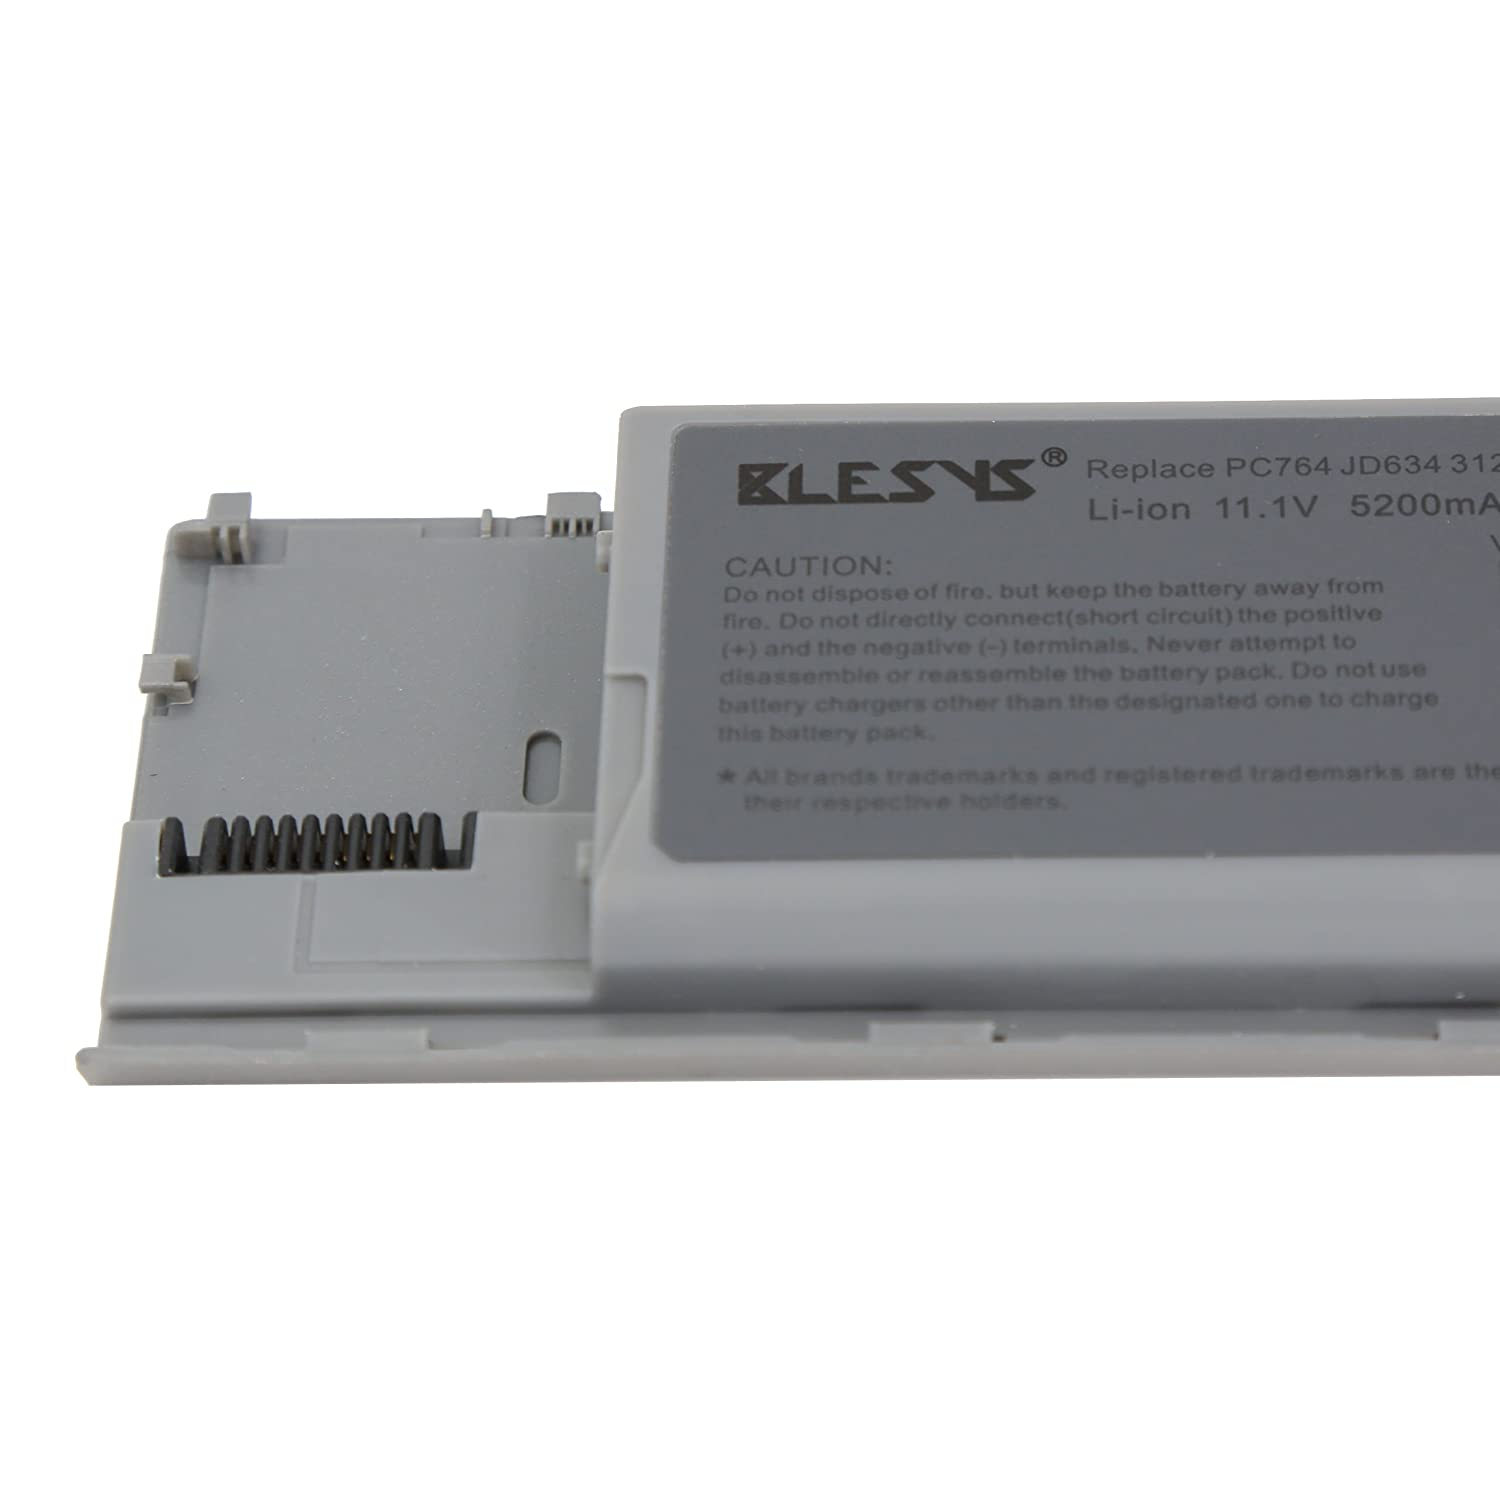 BLESYS - 11.1V 4400mAh Compatible con DELL Latitude D620 D630 Precision M2300 Serie PC764 TC030 TD175 JD634 RC126 JD606 0GD775 451-10298 NT379 JD610 ...